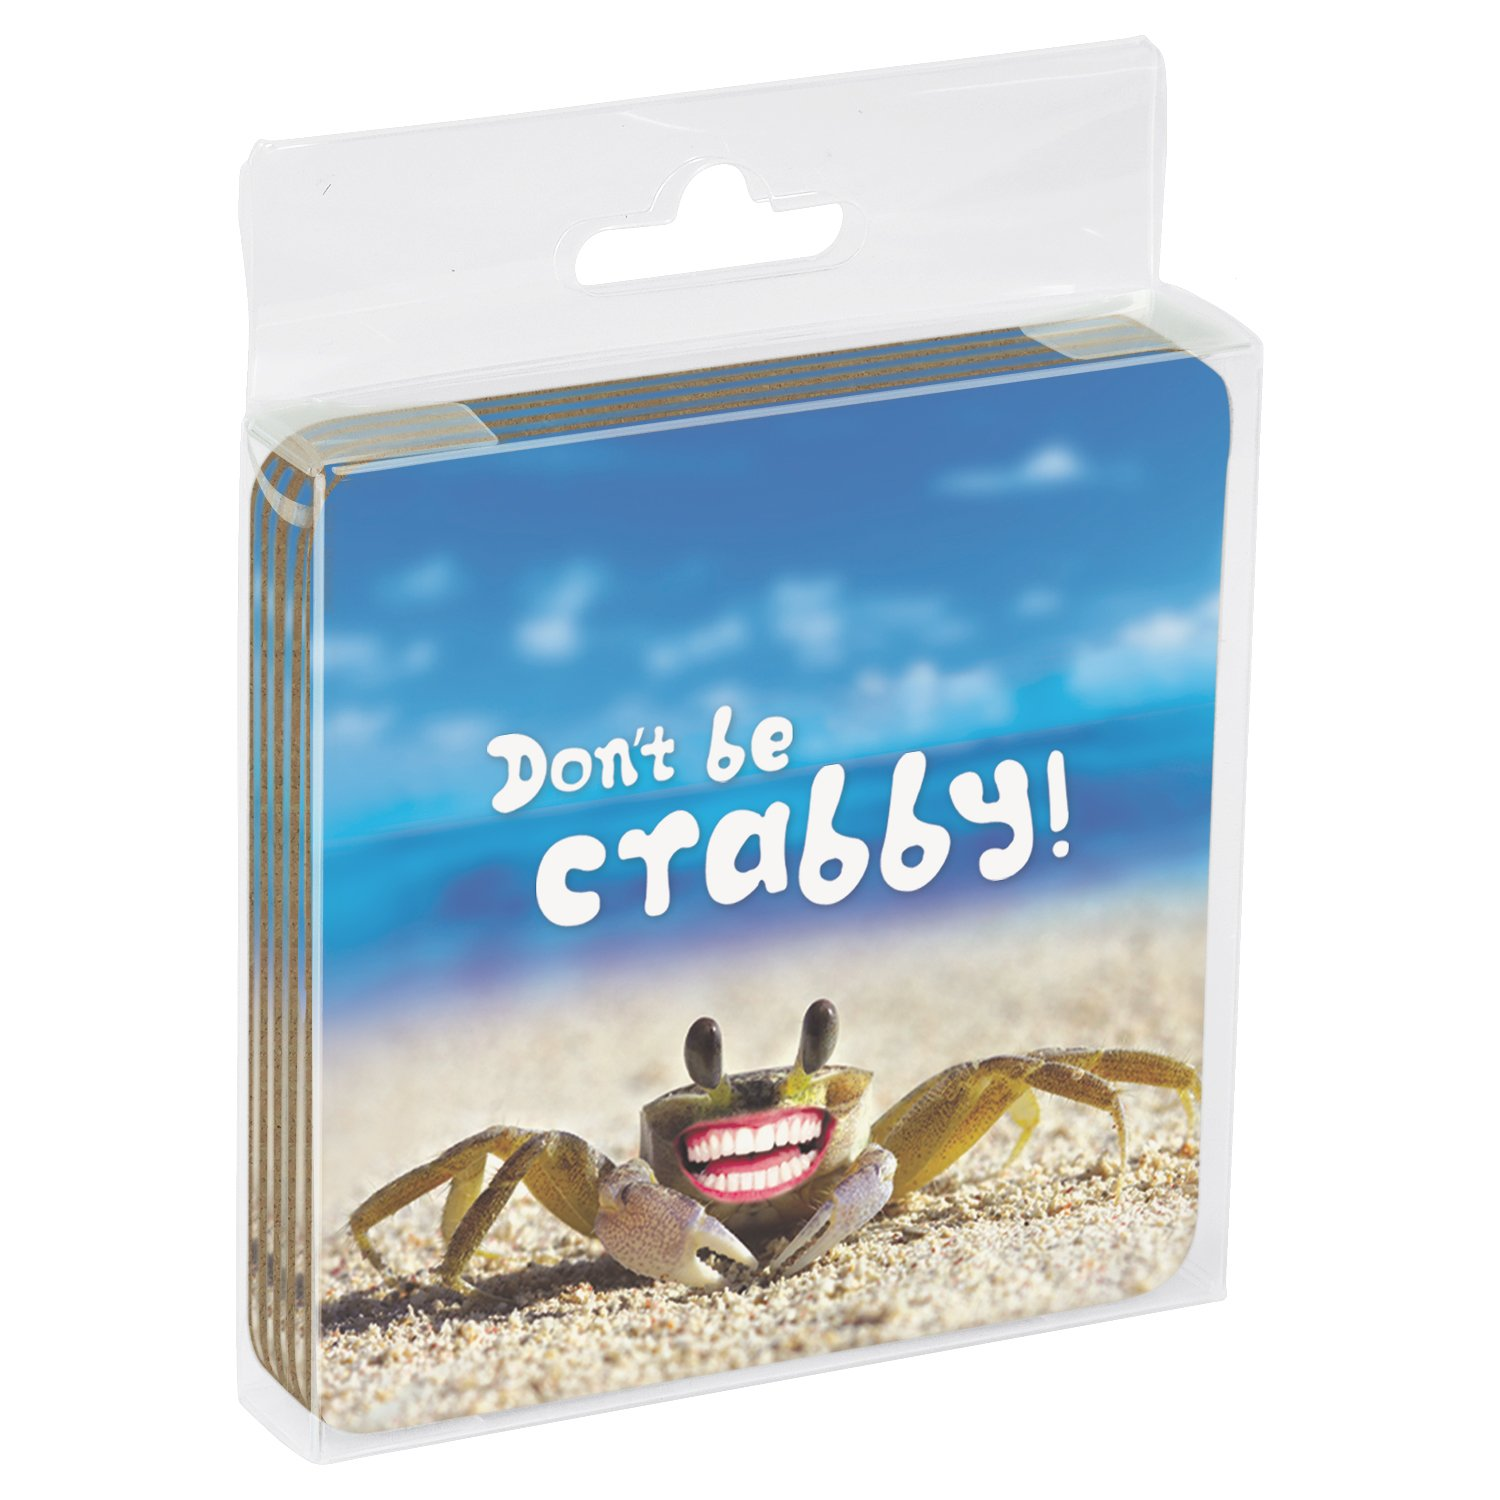 3.75 x 3.75 Inches 16152 Dont Be Crabby Themed Coastal Art Tree-Free Greetings Set Of 4 Cork-Backed Coasters